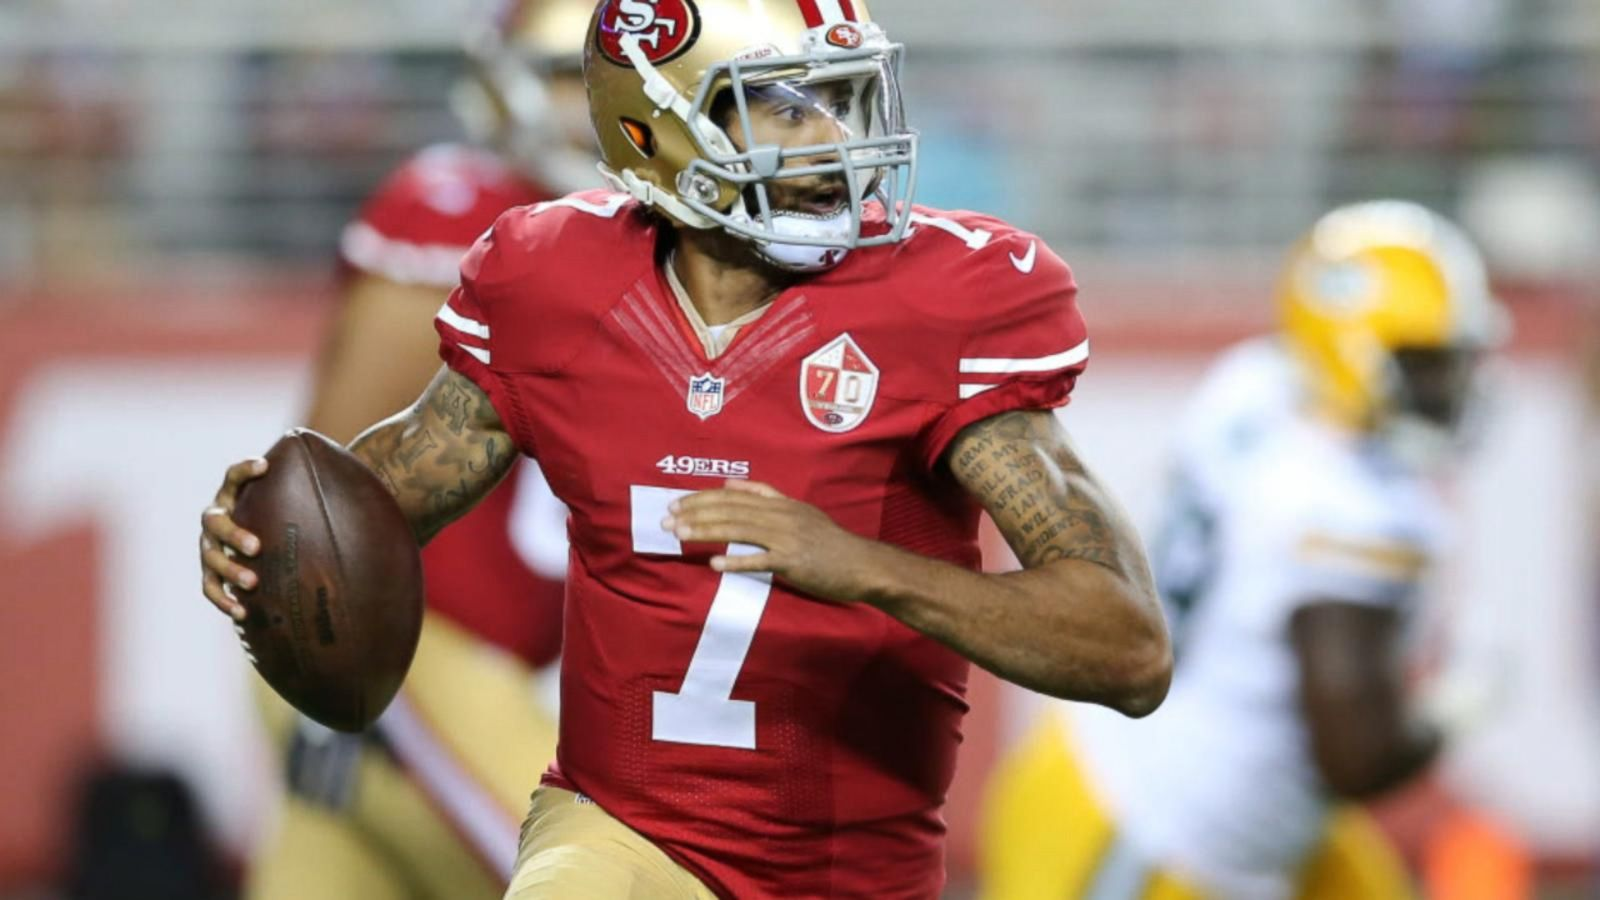 VIDEO: National Anthem Backlash Builds for 49ers QB Colin Kaepernick